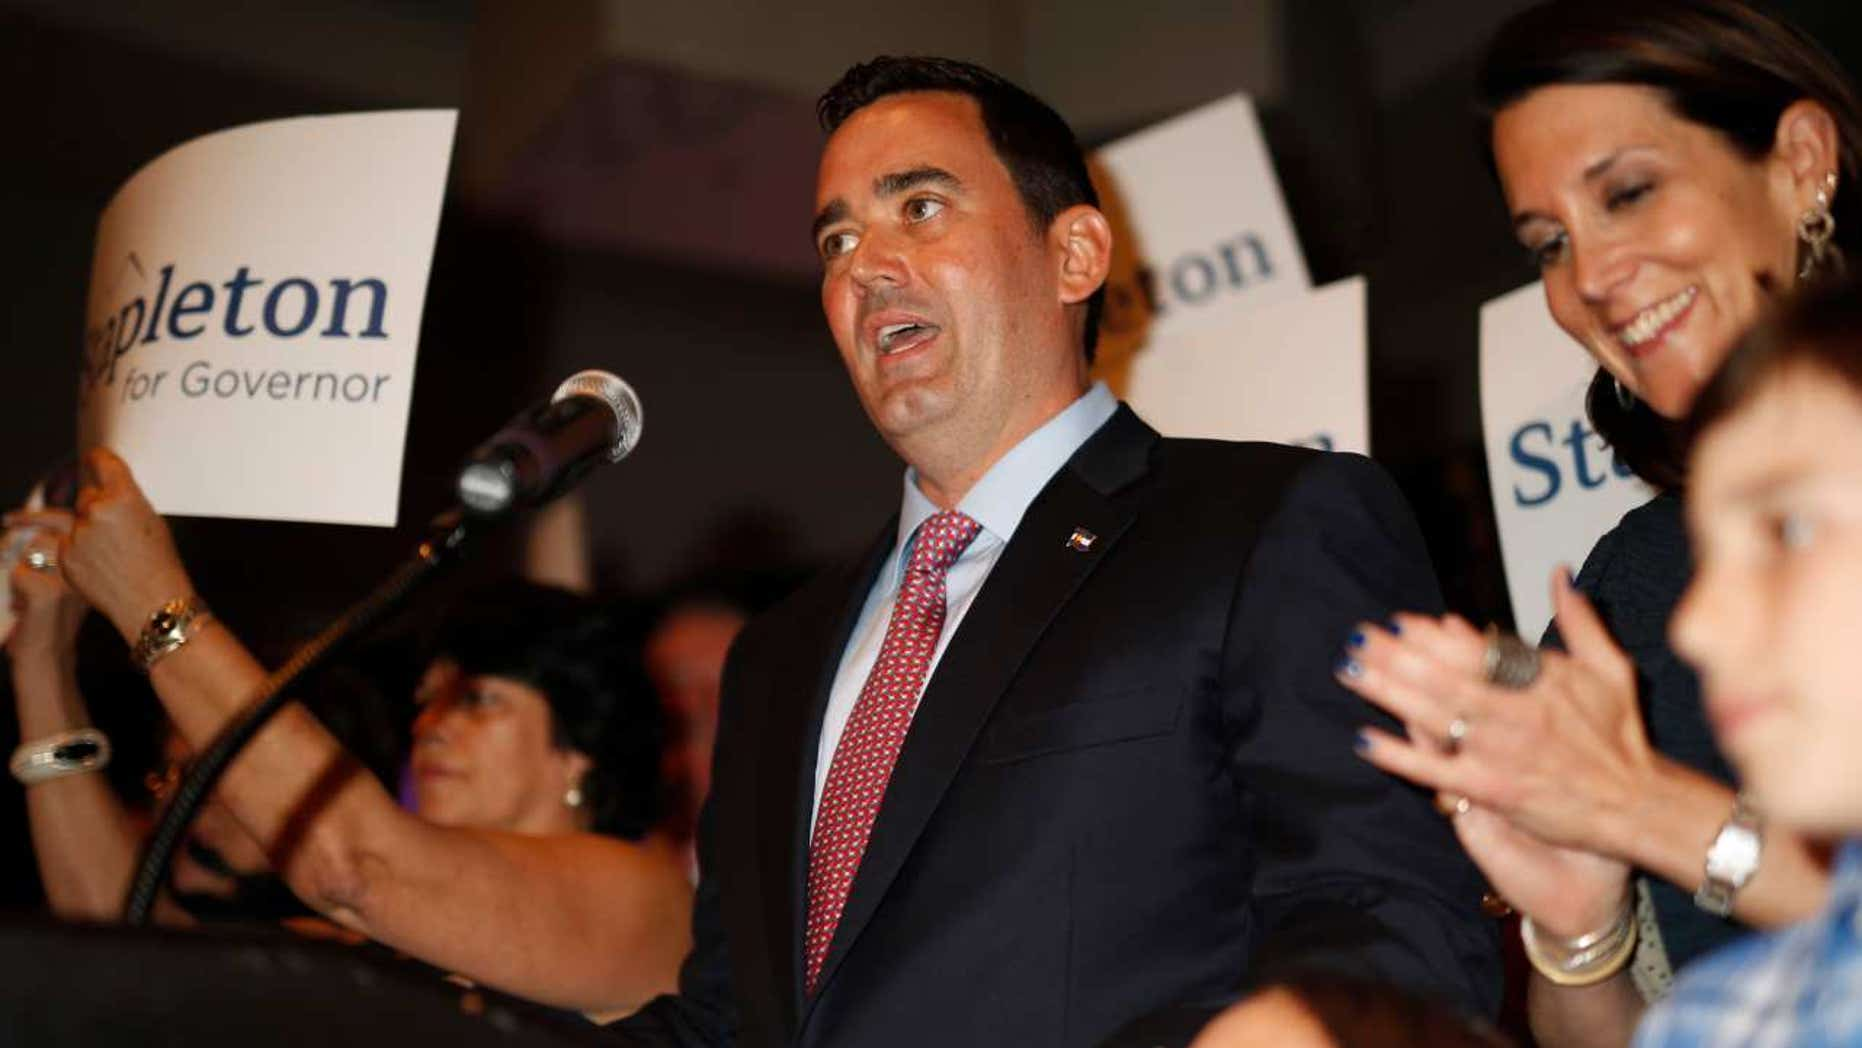 Walker Stapleton speaks after he won the Republican nomination to run for Colorado's governorship during an election night watch party in Greenwood Village, Colo., June 26, 2018.